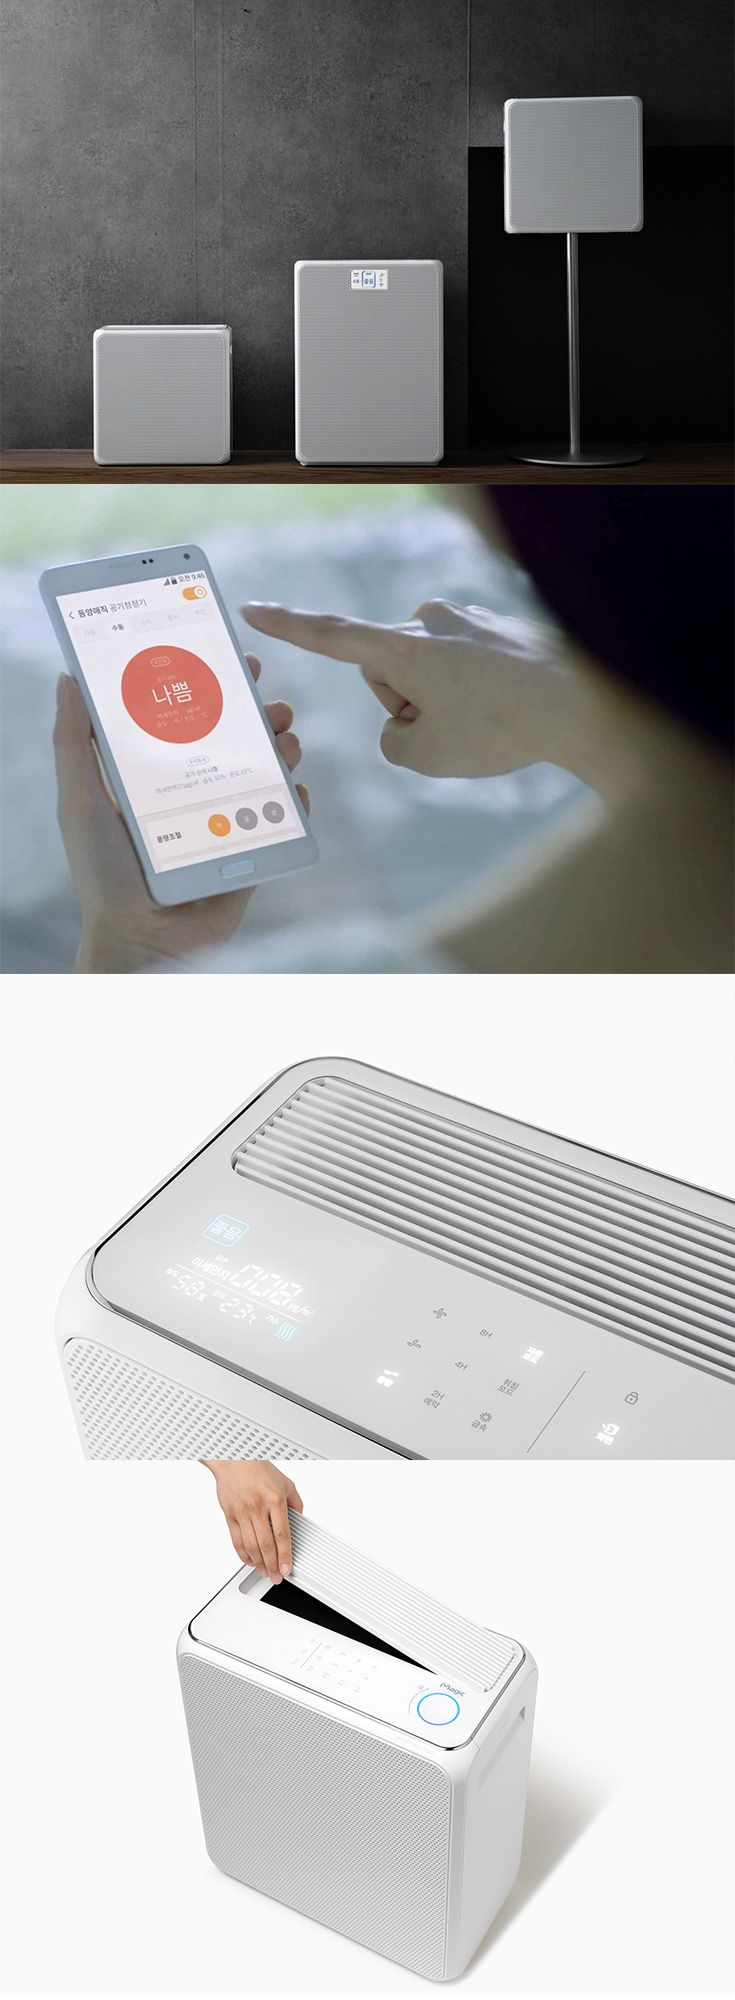 It's called 'MINI' and it's actually an indoor air cleaning system but it does follow in the footsteps of speaker design both aesthetically and functionally, Specifically, surround sound... READ MORE at Yanko Design !